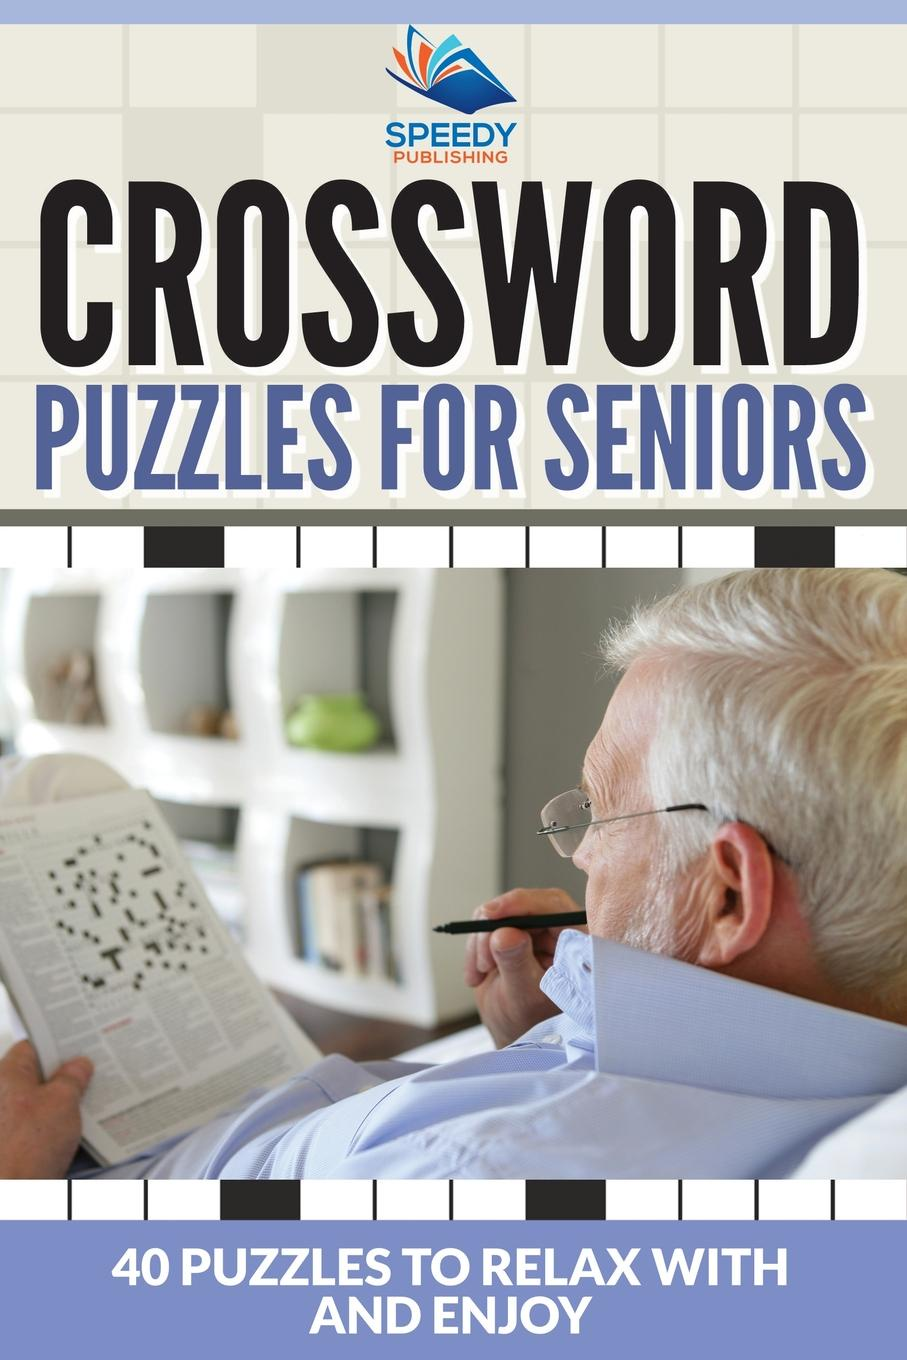 Speedy Publishing LLC. Crossword Puzzles For Seniors. 40 Puzzles To Relax With And Enjoy